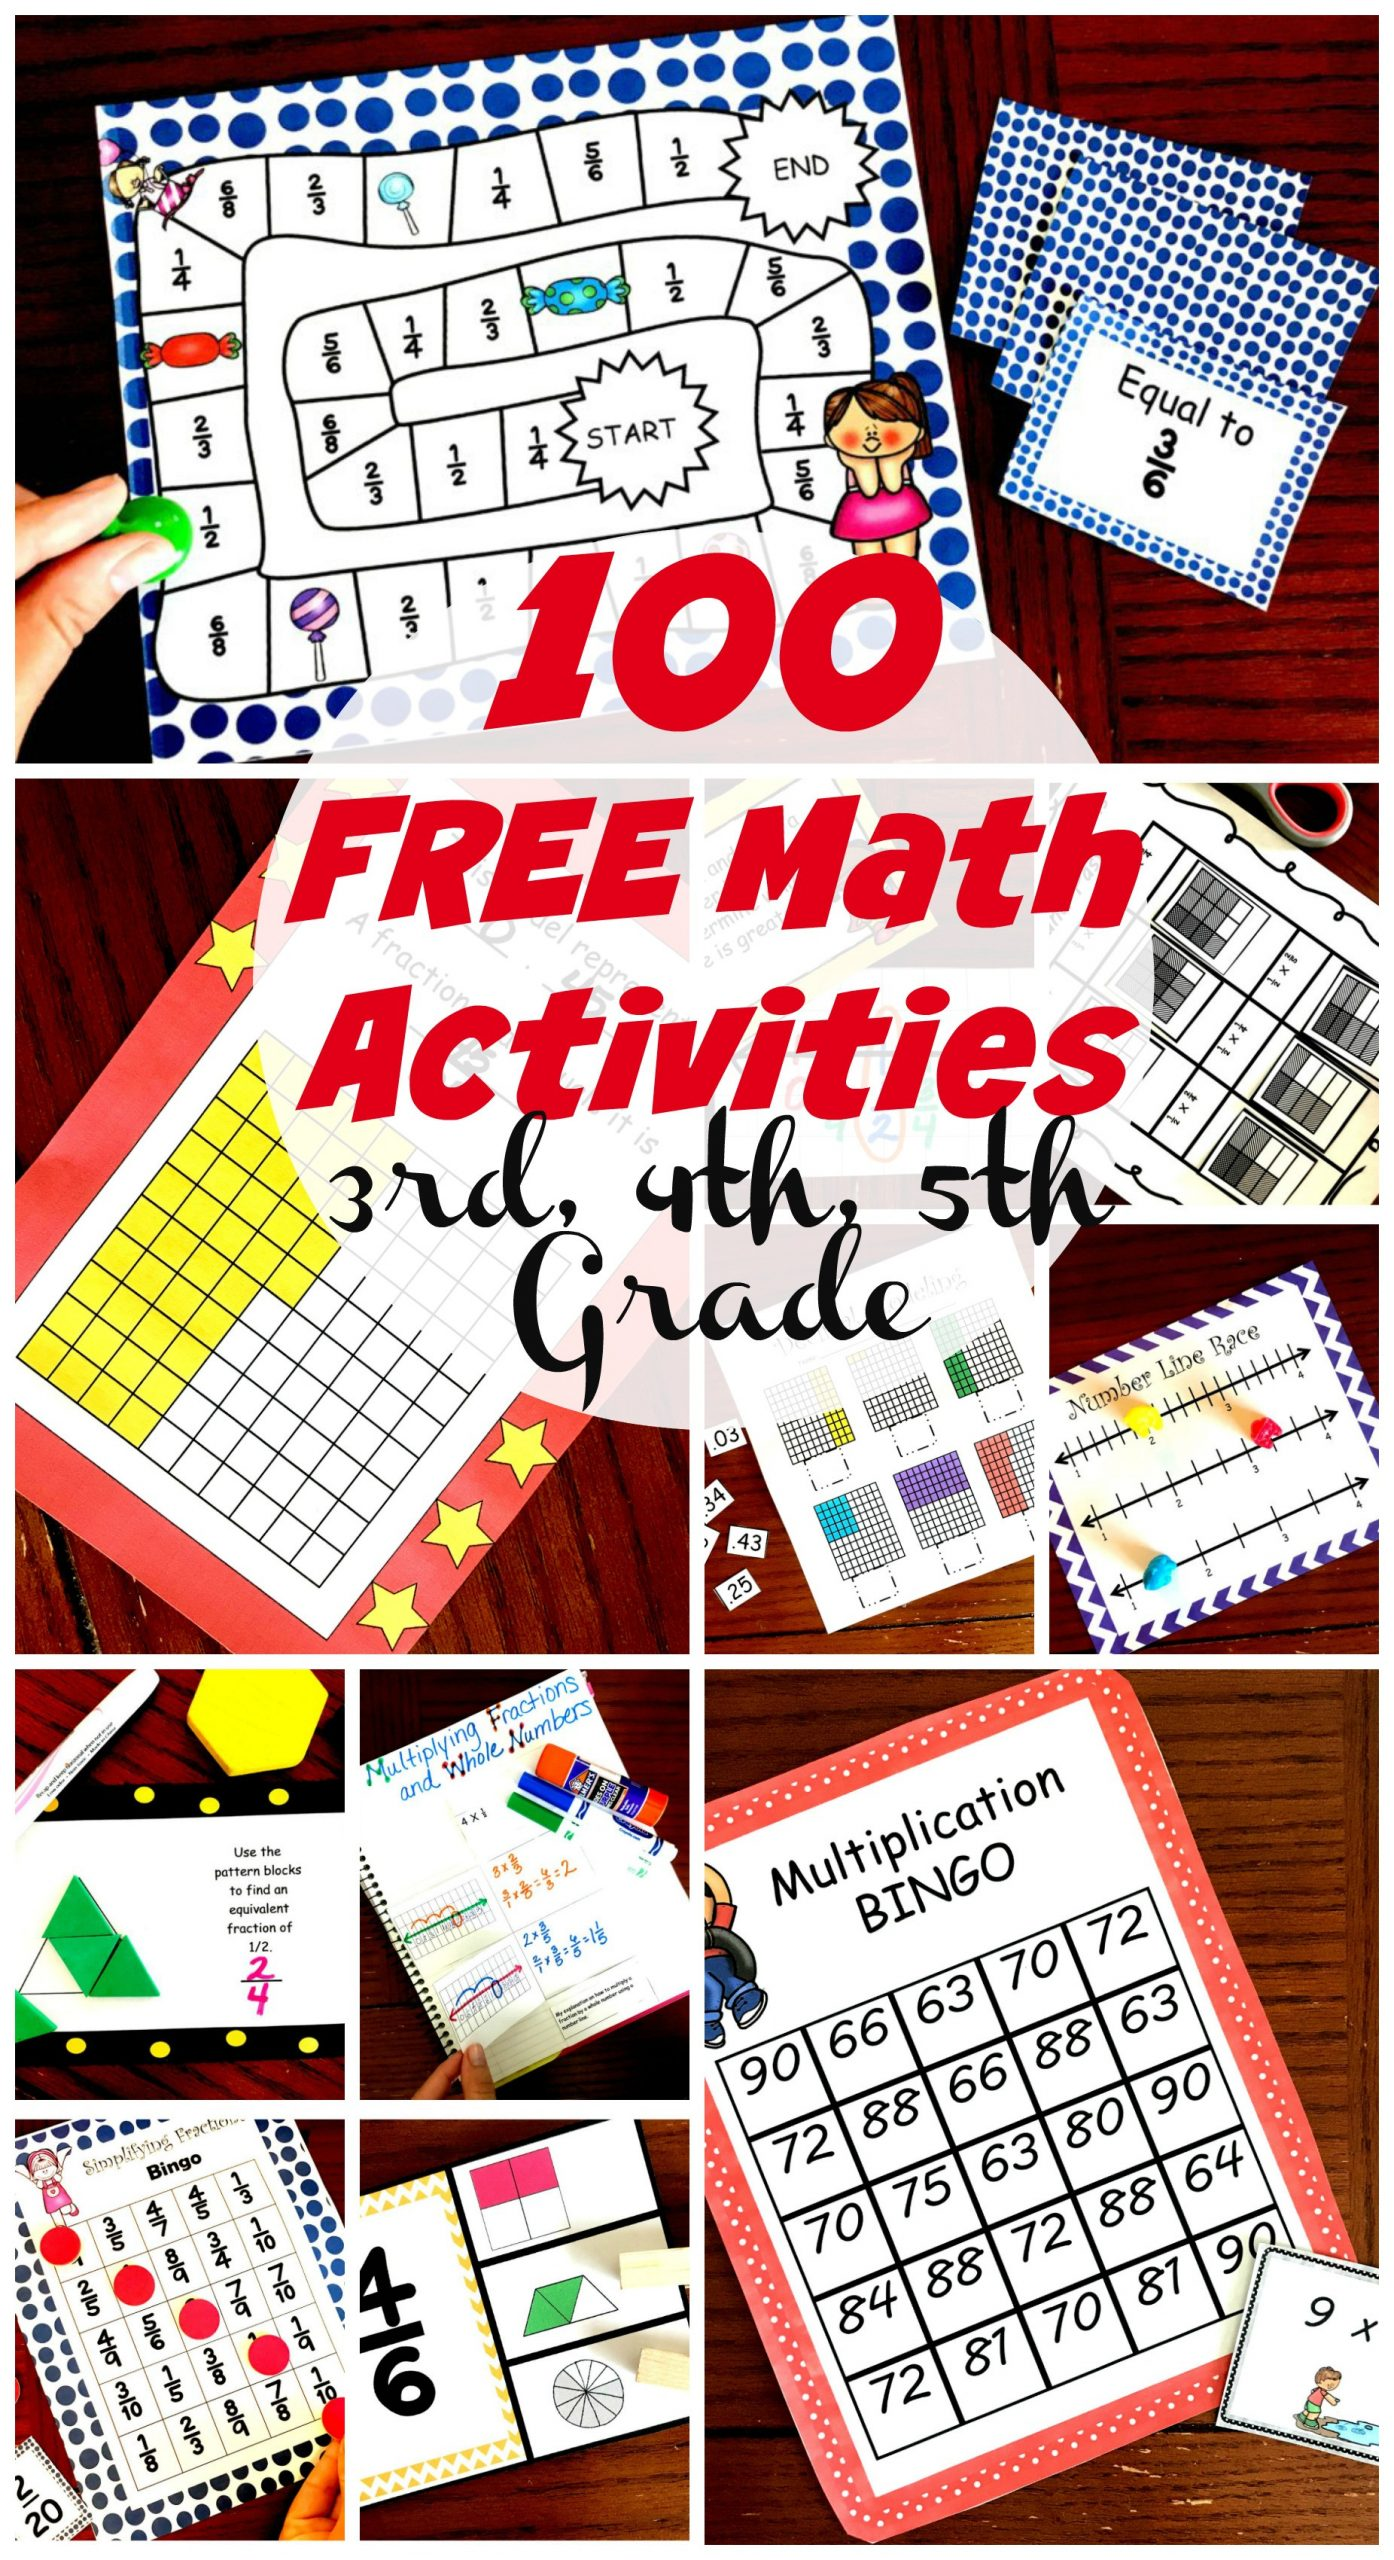 Fifth Grade Measurement Worksheets 50 Awesome and Fun Math Activities for 3rd 4th and 5th